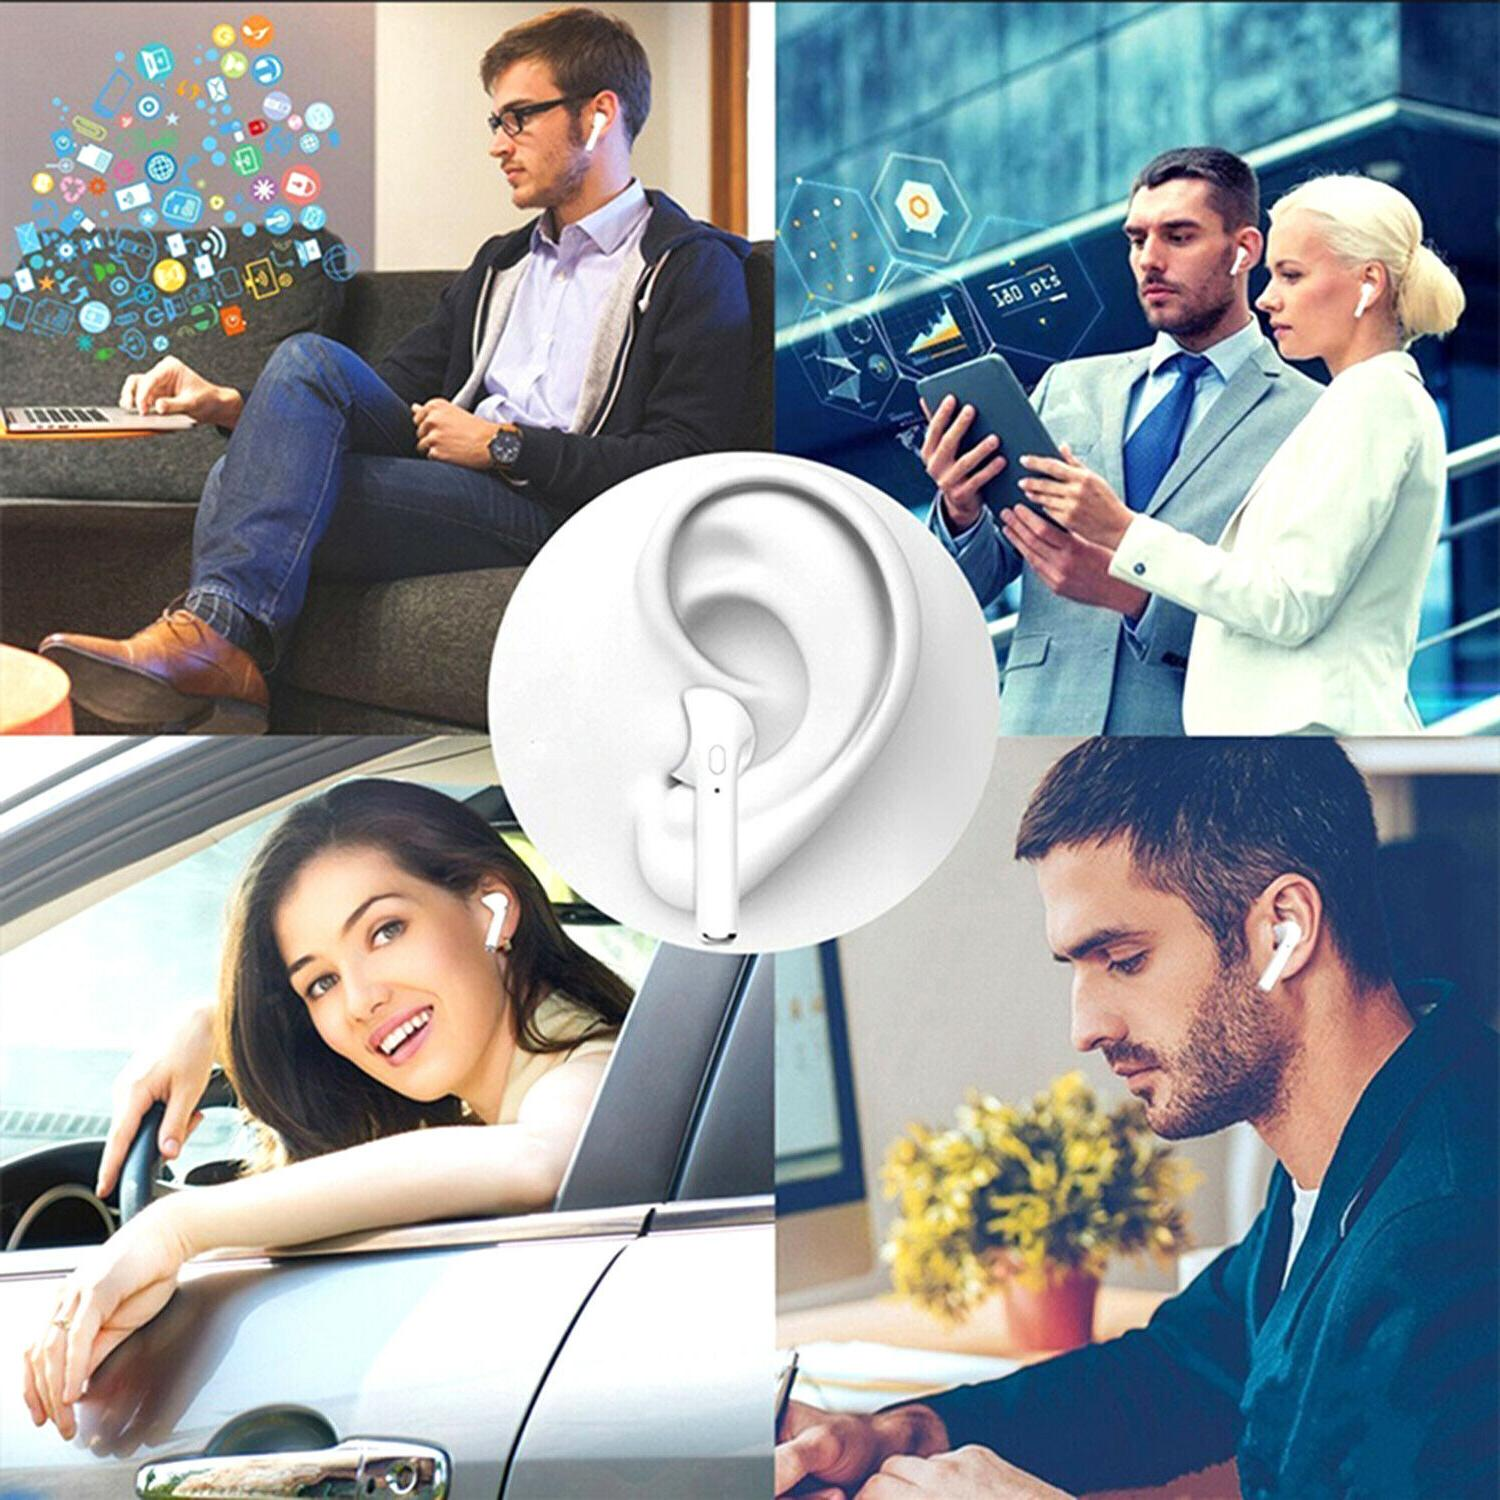 Headphones Wireless Earbuds For Phone